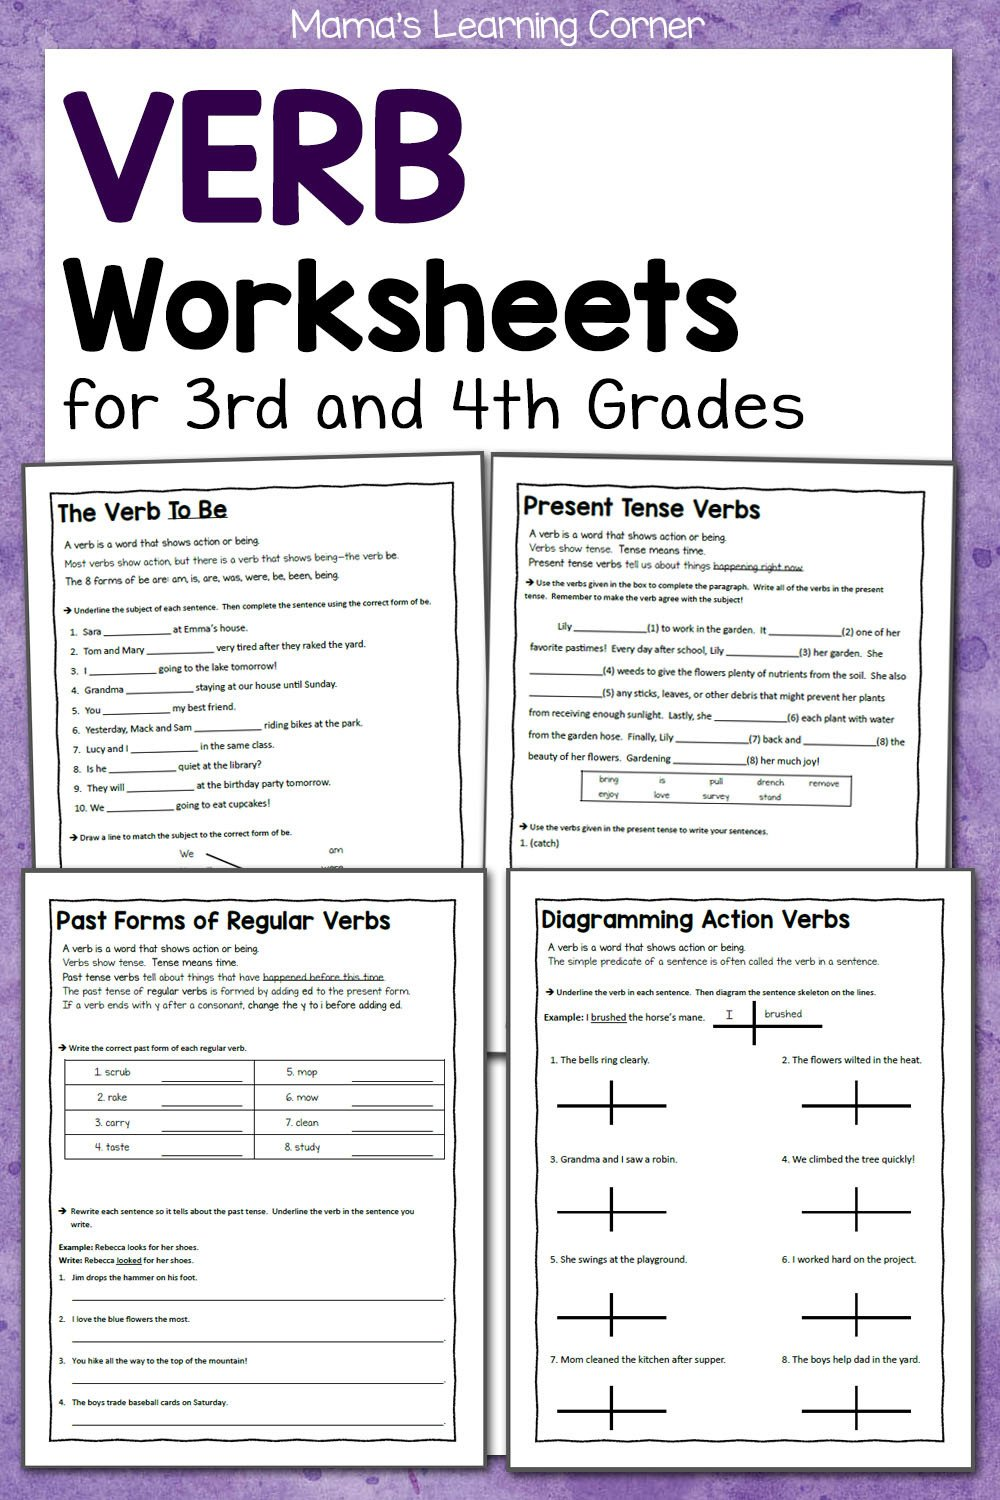 Verbs Worksheets First Grade Verb Worksheets for 3rd and 4th Grades Mamas Learning Corner